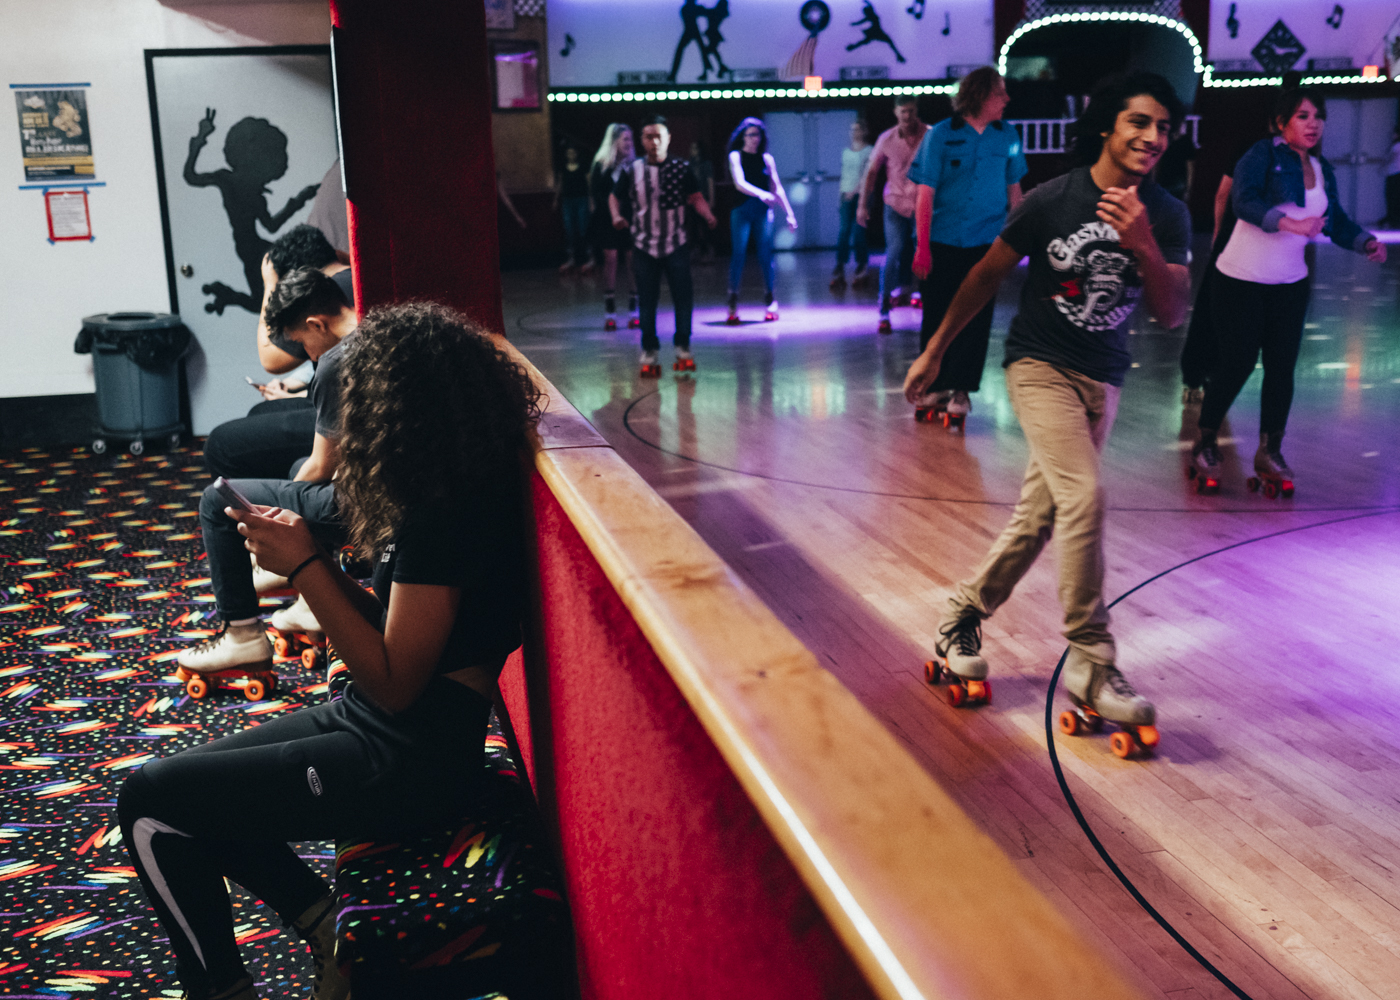 All around the rink, alleys with carpets as in the 70s. Young people rest there, beginners recover from their emotions before  nding the courage to return to the rink, and most of them  irt and have fun.